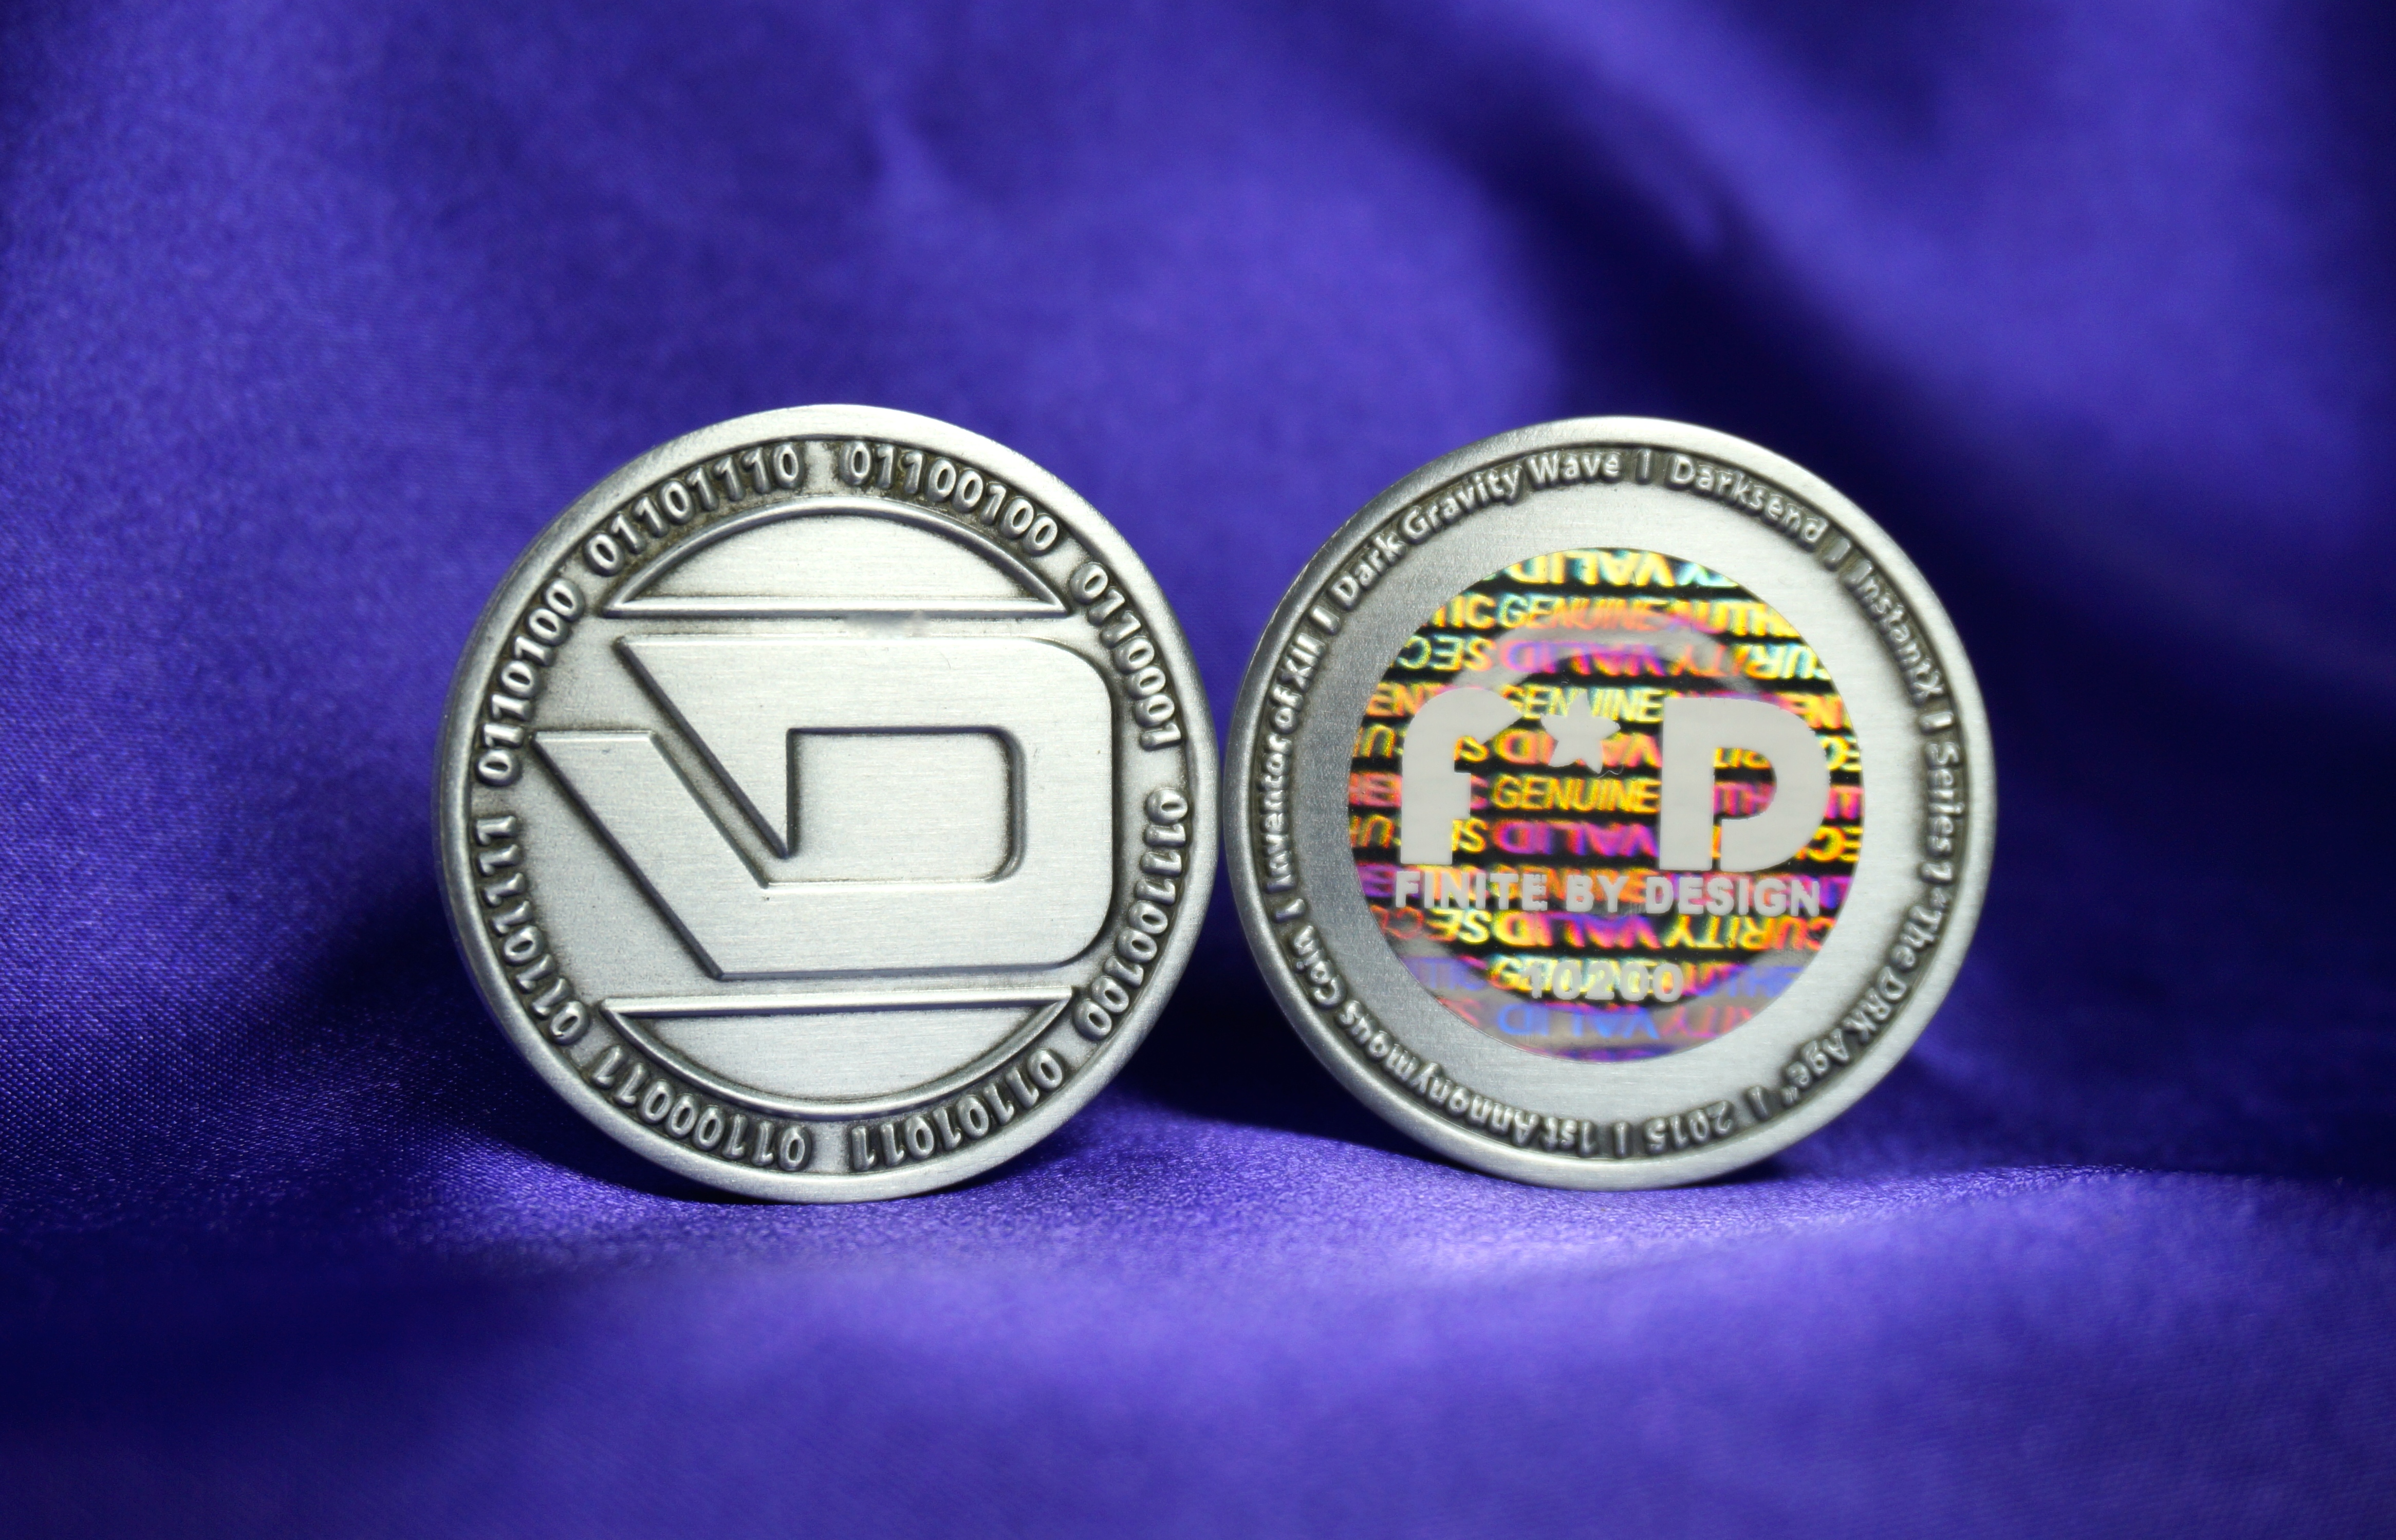 Dash (Darkcoin)